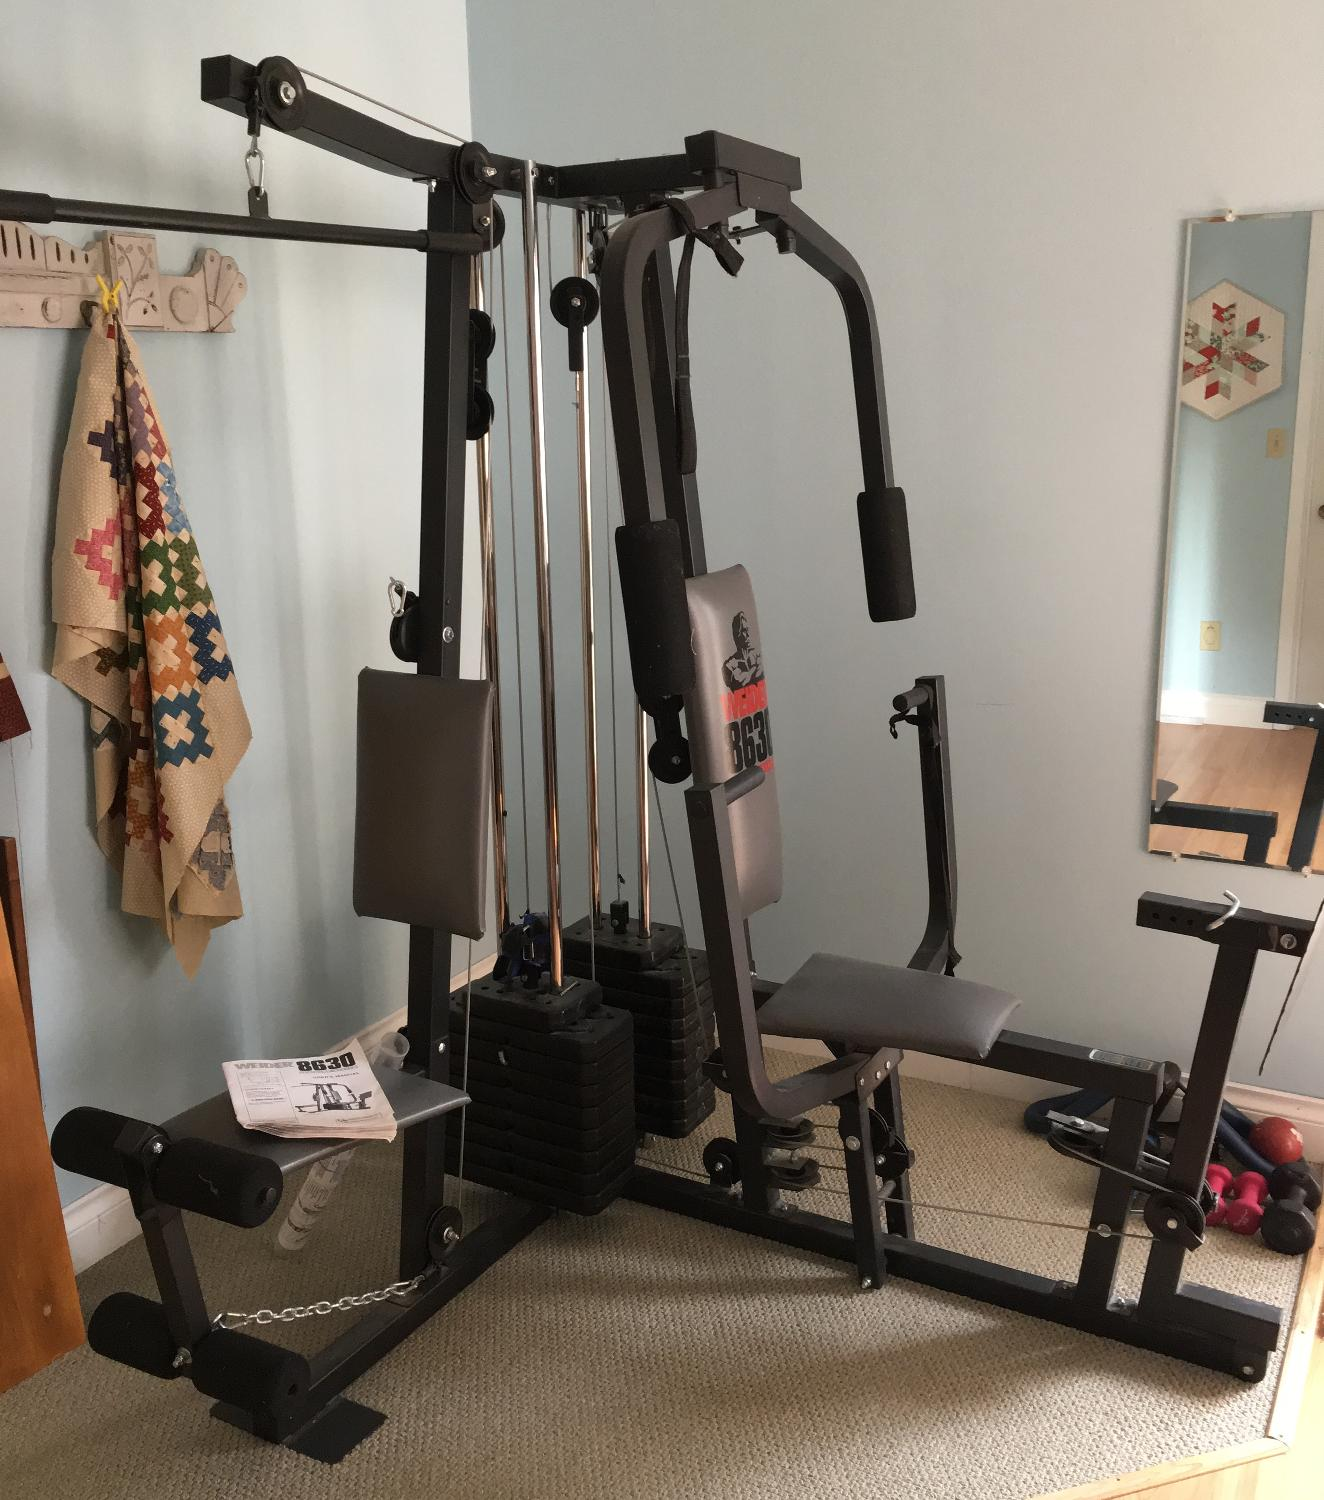 Find more price reduction weider home gym training